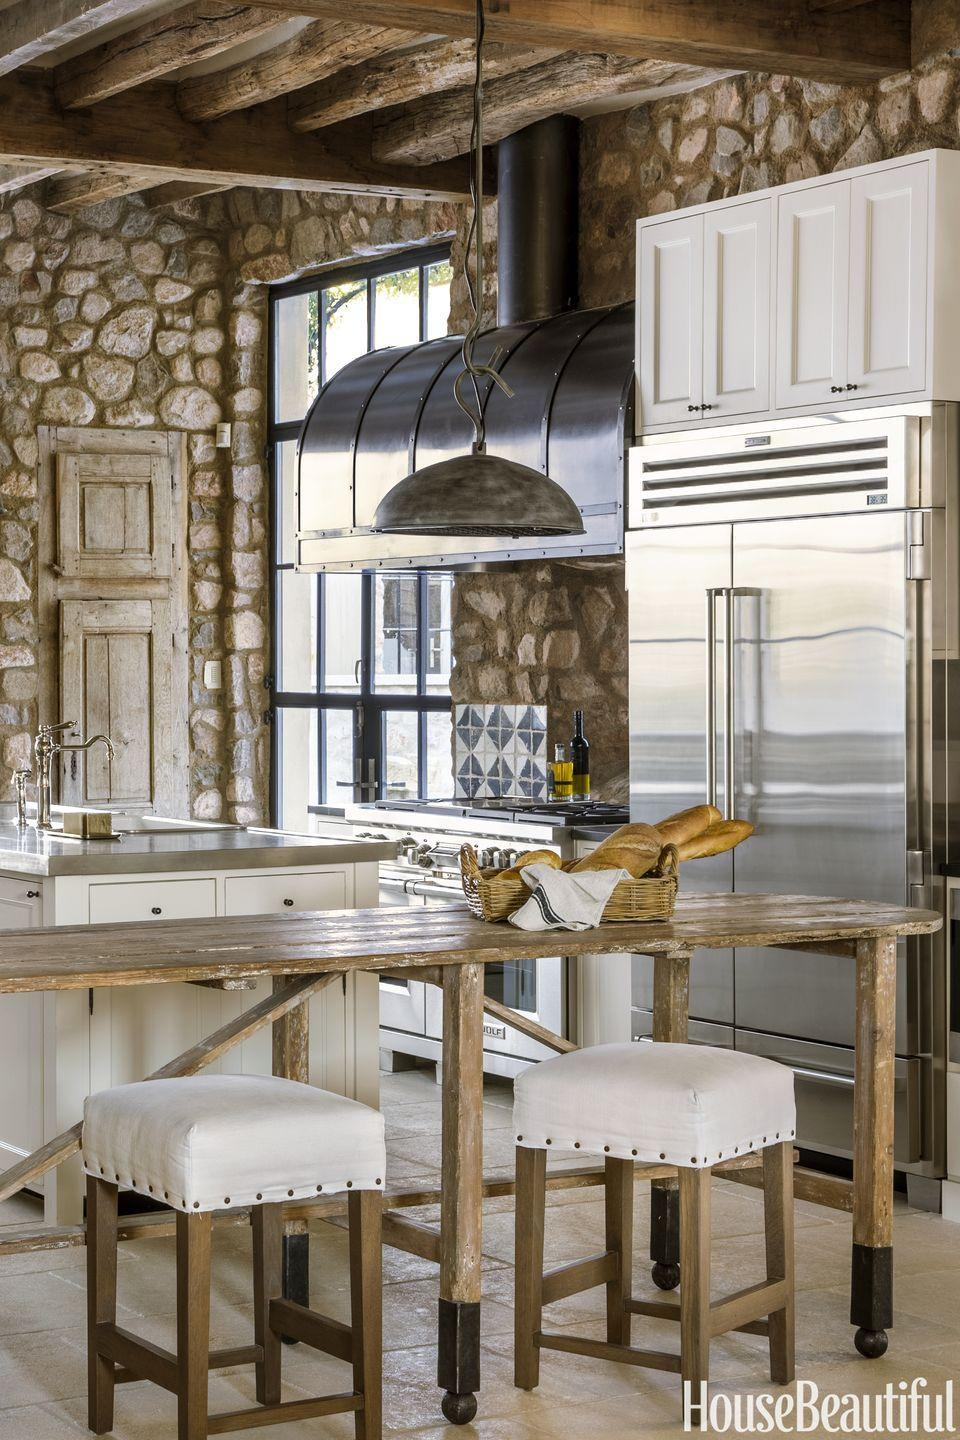 "<p>The contrast between the rustic stonework and streamlined stainless steel appliances give this <a href=""https://www.housebeautiful.com/room-decorating/kitchens/g13446033/inga-rehmann-scottsdale-kitchen/"" rel=""nofollow noopener"" target=""_blank"" data-ylk=""slk:French-inspired kitchen"" class=""link rapid-noclick-resp"">French-inspired kitchen</a> by Inga L. Rehmann a serious wow factor. To maximize entertaining space, downsize an island and add a trestle table with stools.</p>"